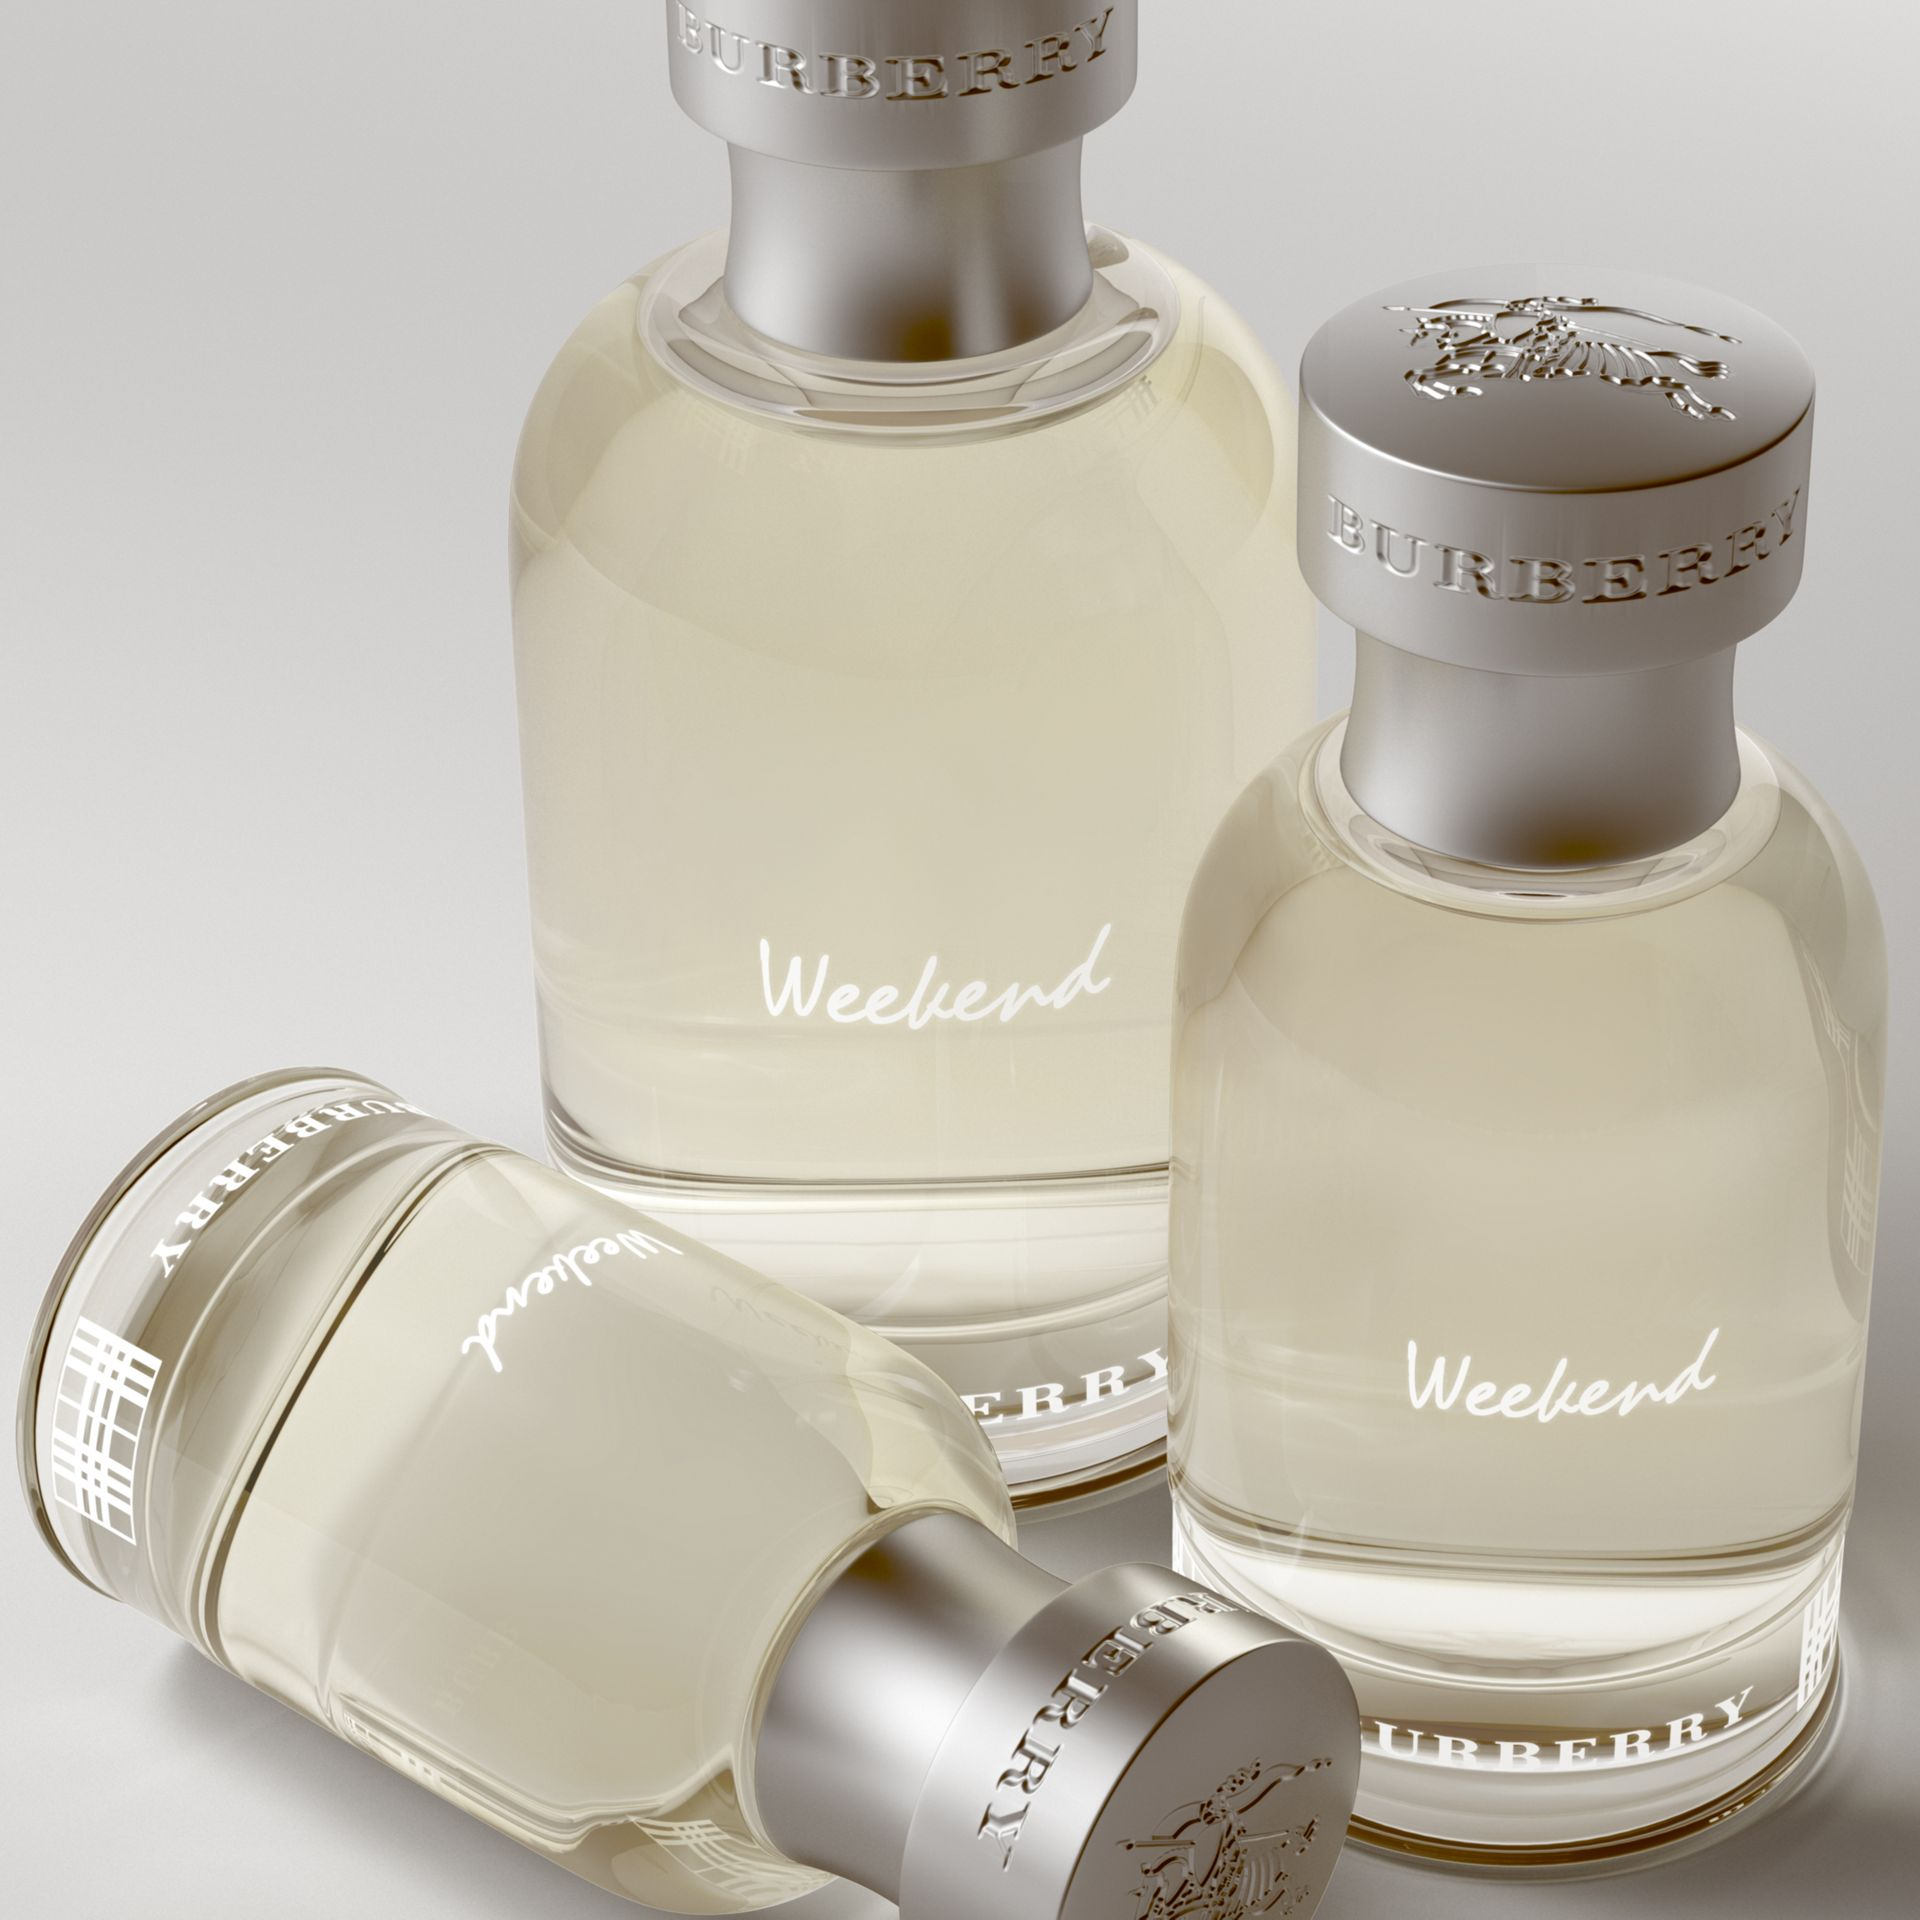 Burberry Weekend Eau de Toilette 100ml - Men | Burberry Australia - gallery image 1